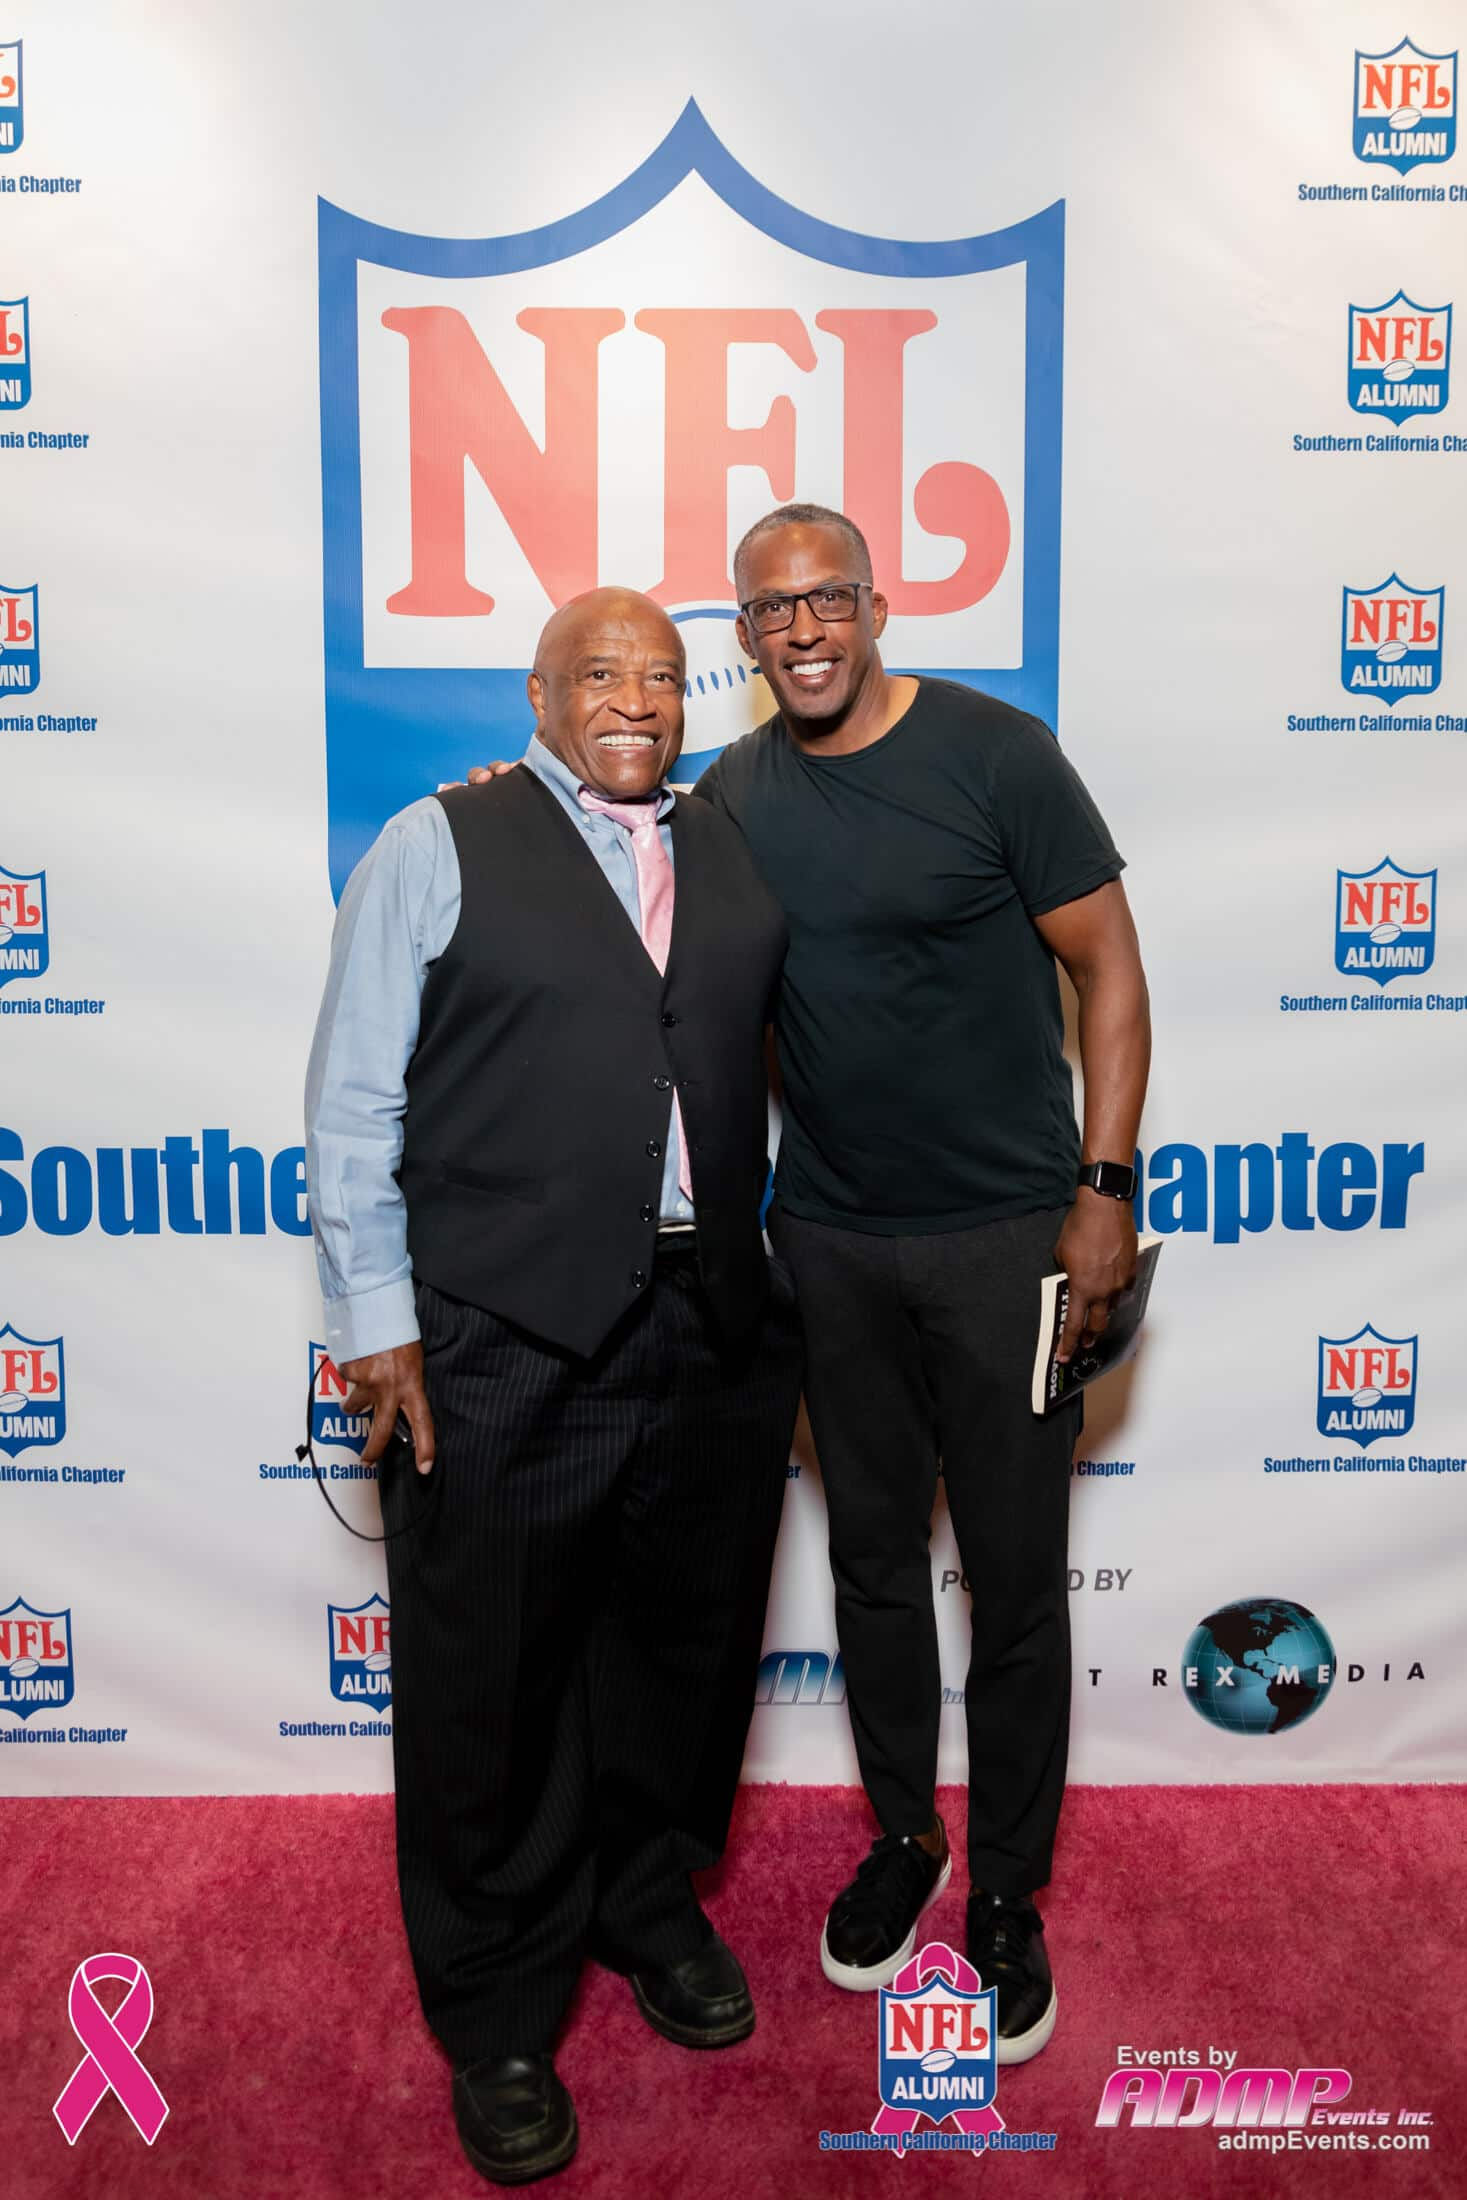 NFL Alumni SoCal Charity Event Series Breast Cancer Event 10-14-19-240